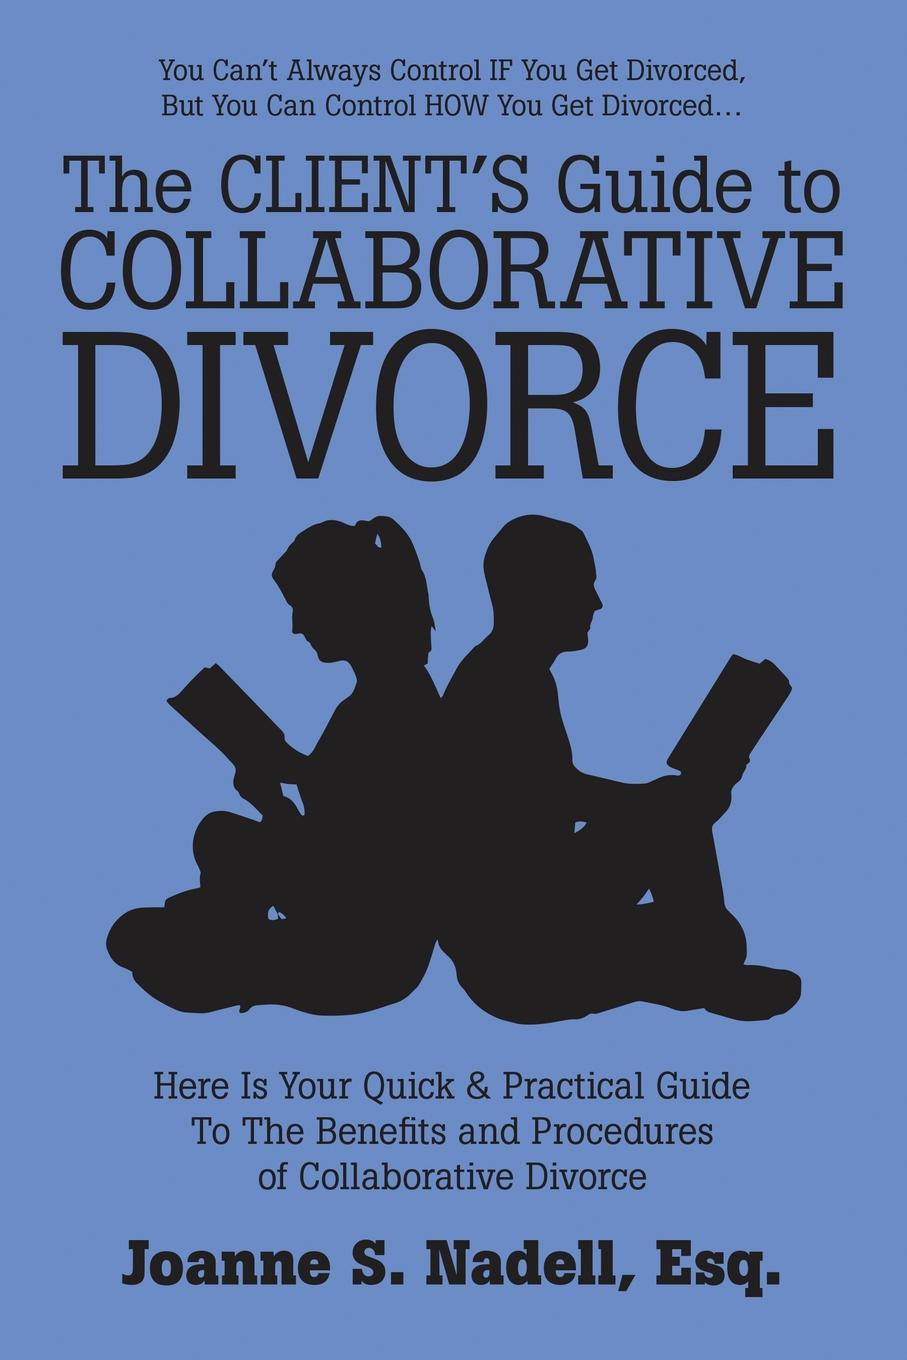 Esq. Joanne S. Nadell The Client.s Guide to Collaborative Divorce. Your Quick and Practical Guide to the Benefits and Procedures of Collaborative Divorce lois brenner robert stein getting your share a woman s guide to successful divorce strategies